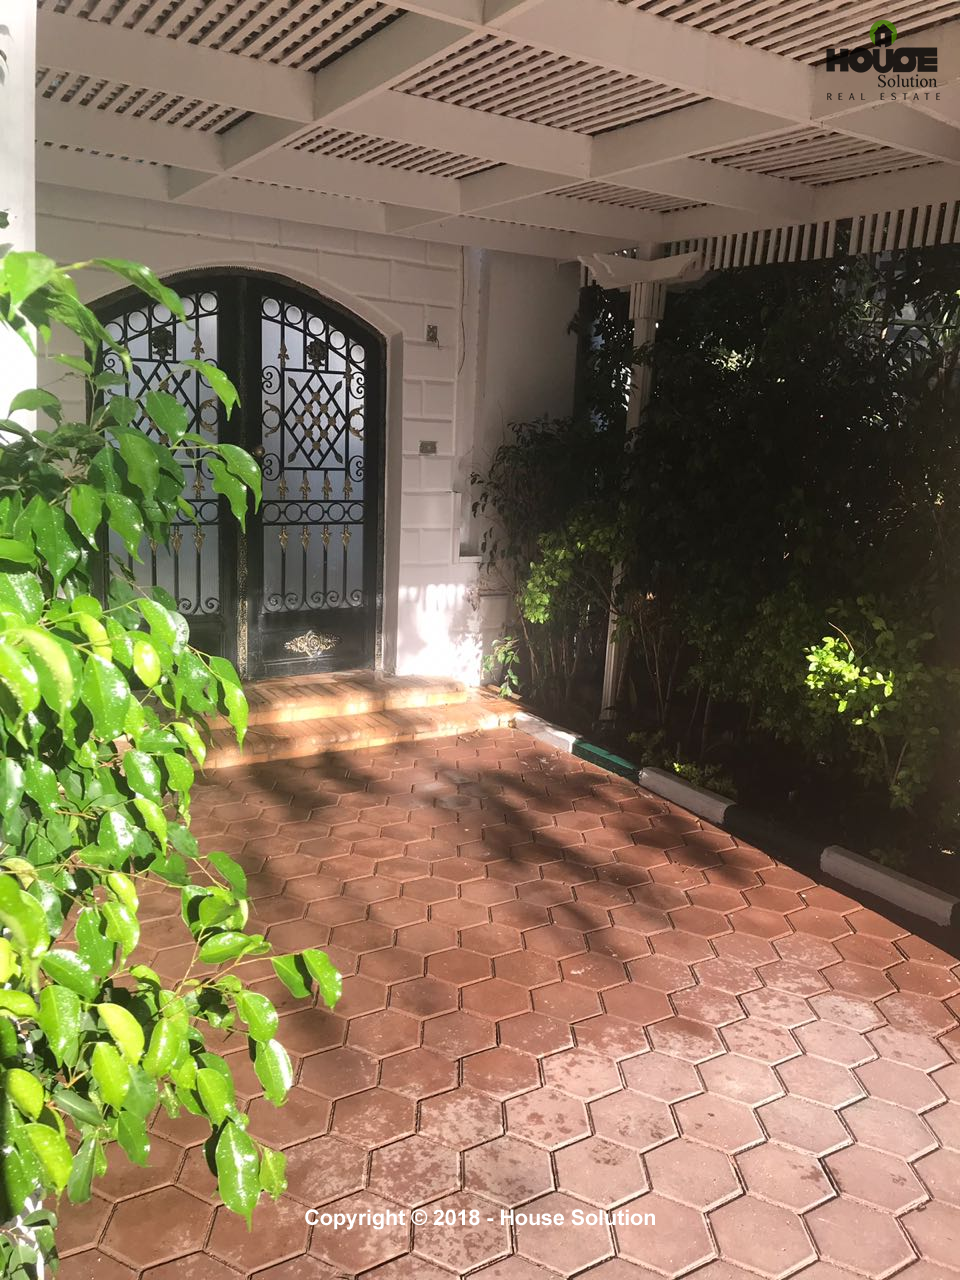 Ground Floors For Rent In Maadi Maadi Sarayat -#24